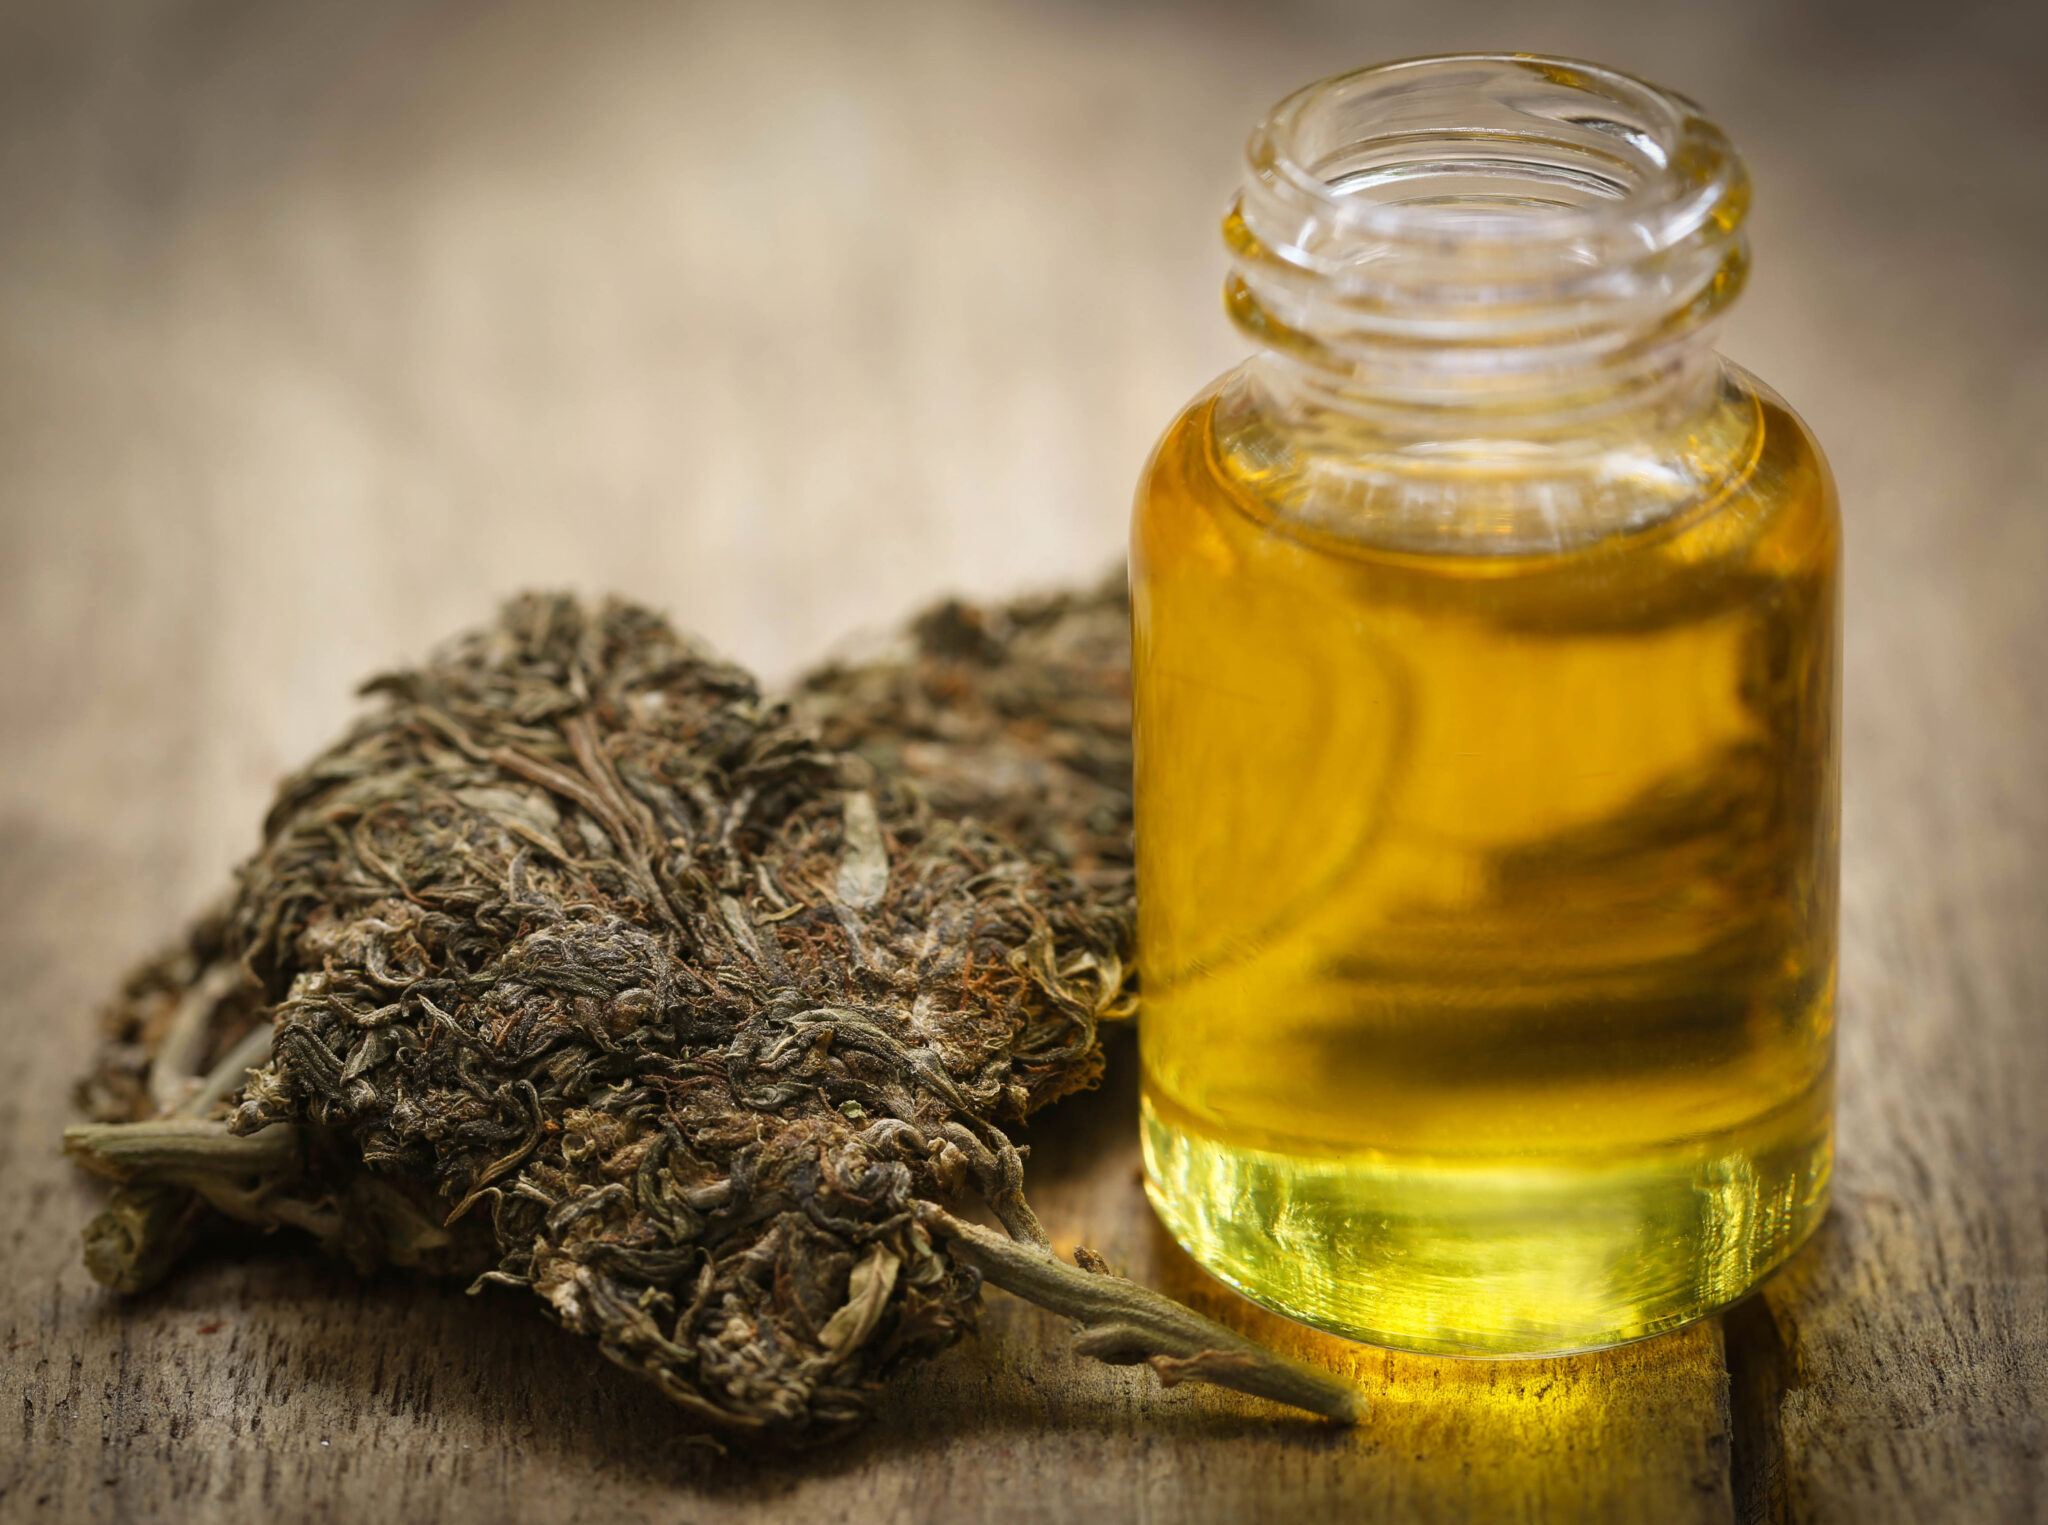 Medicinal cannabis with extract oil